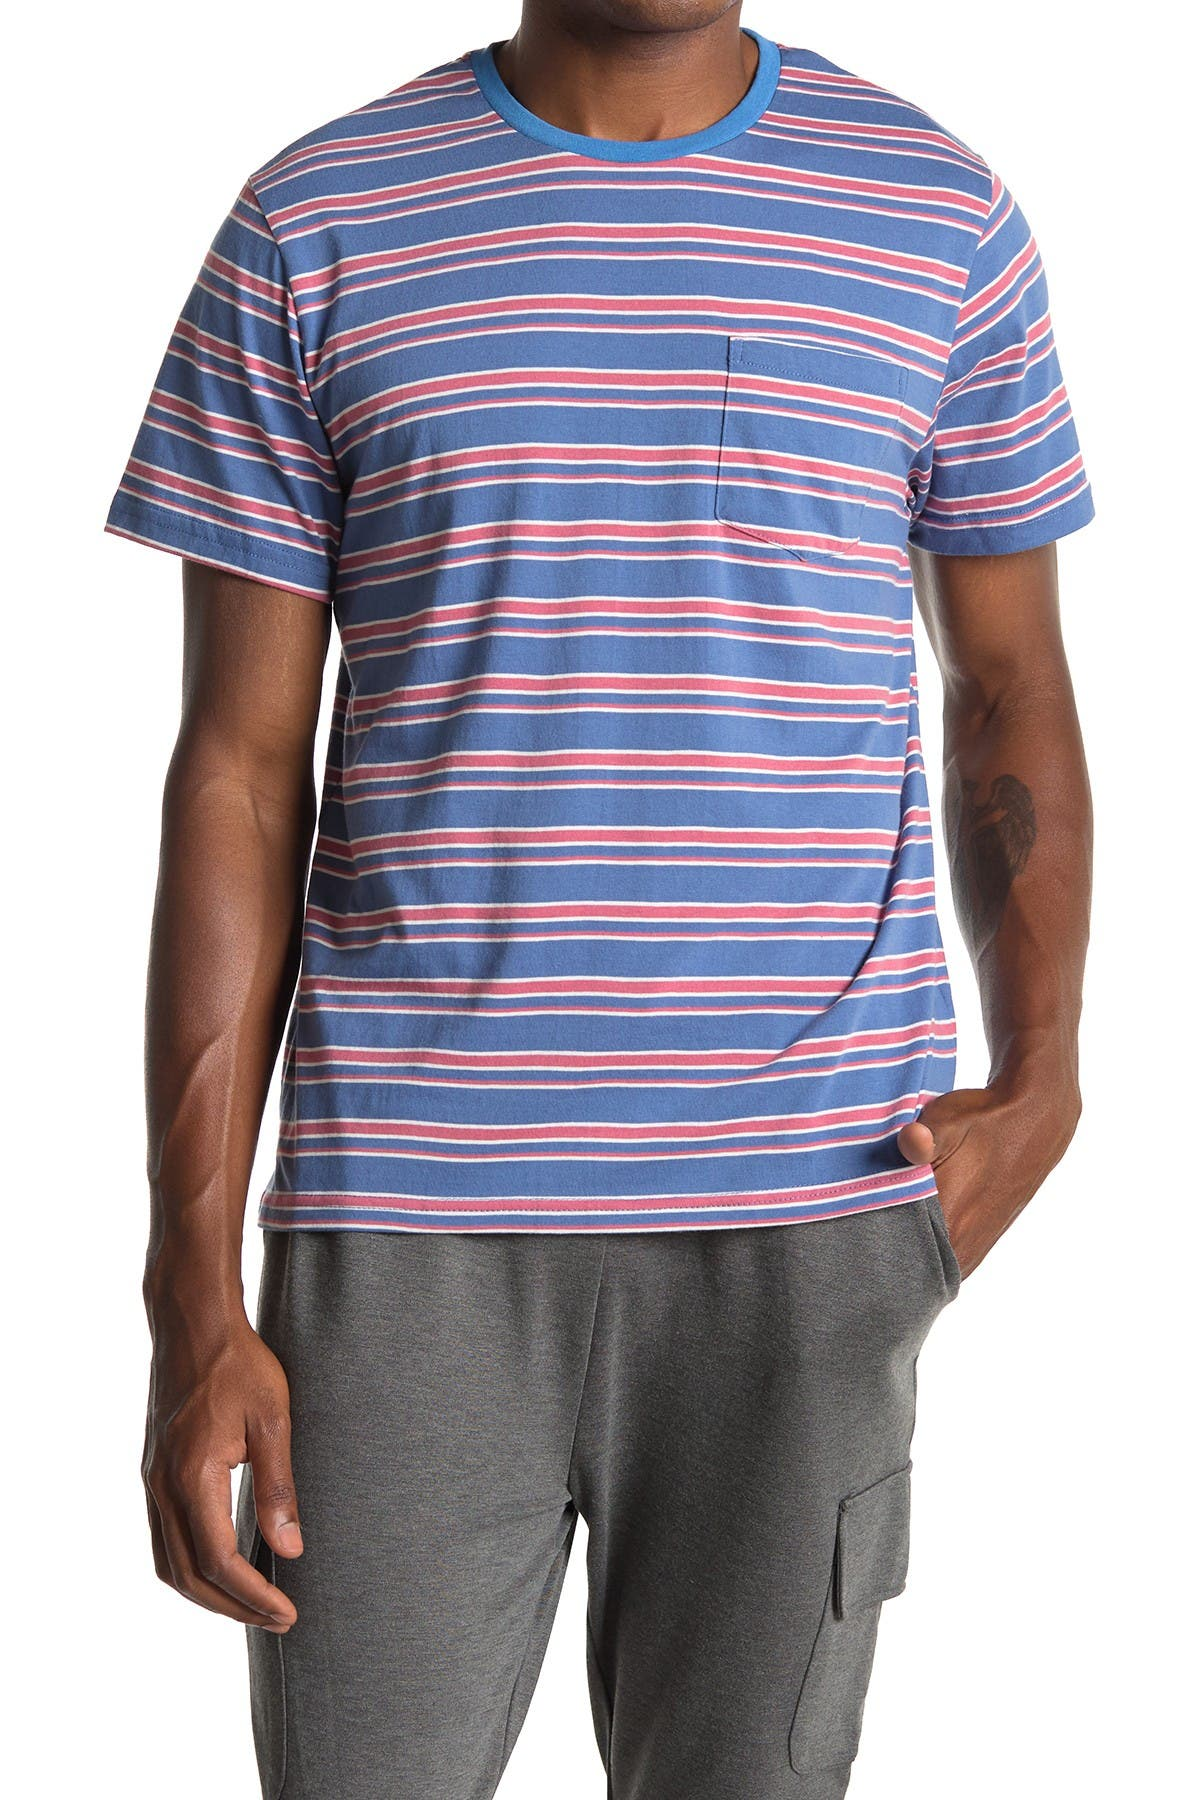 Image of Sovereign Code Stadium Striped Tee